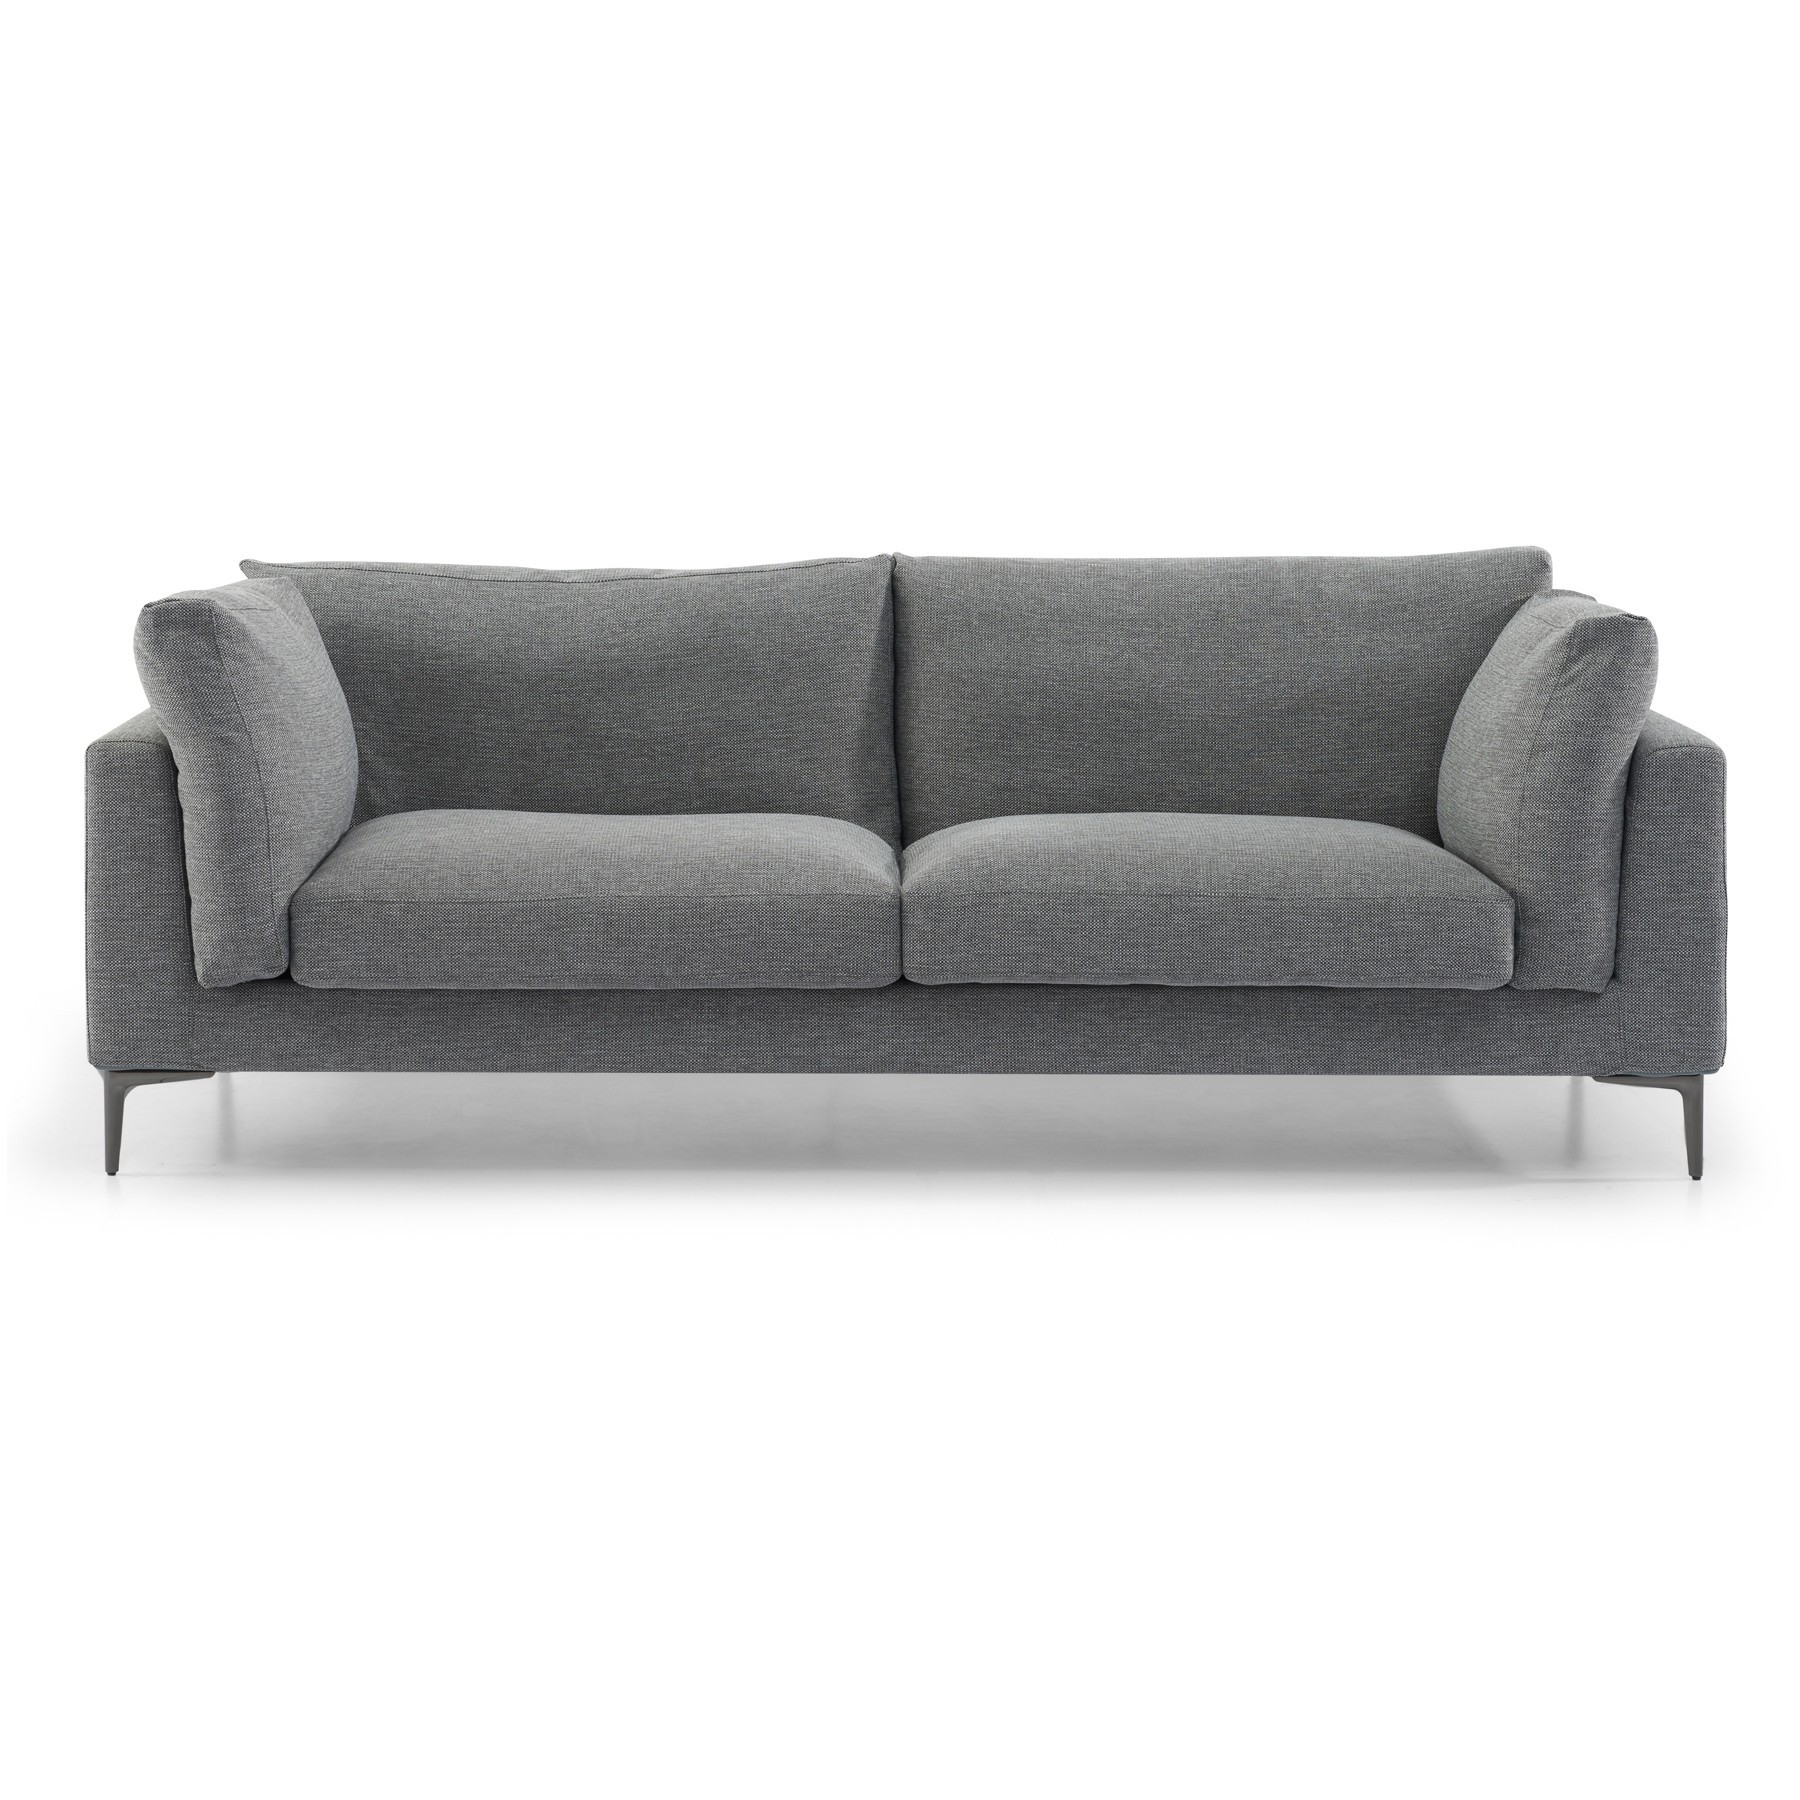 Romney Fabric Sofa, 3 Seater, Graphite Grey